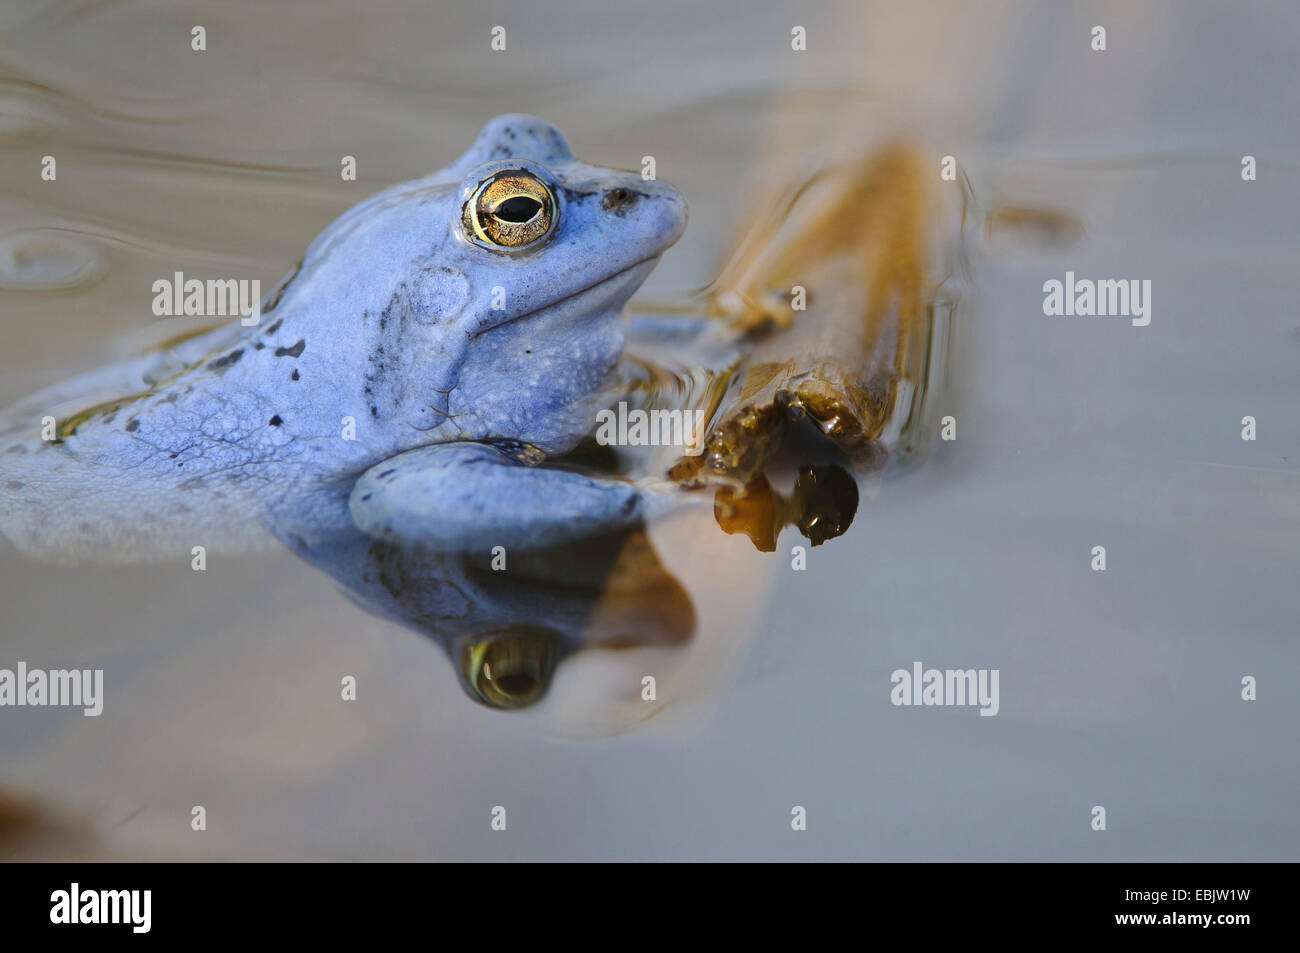 moor frog (Rana arvalis), male in mating colouration sitting at the surface of a pond - Stock Image